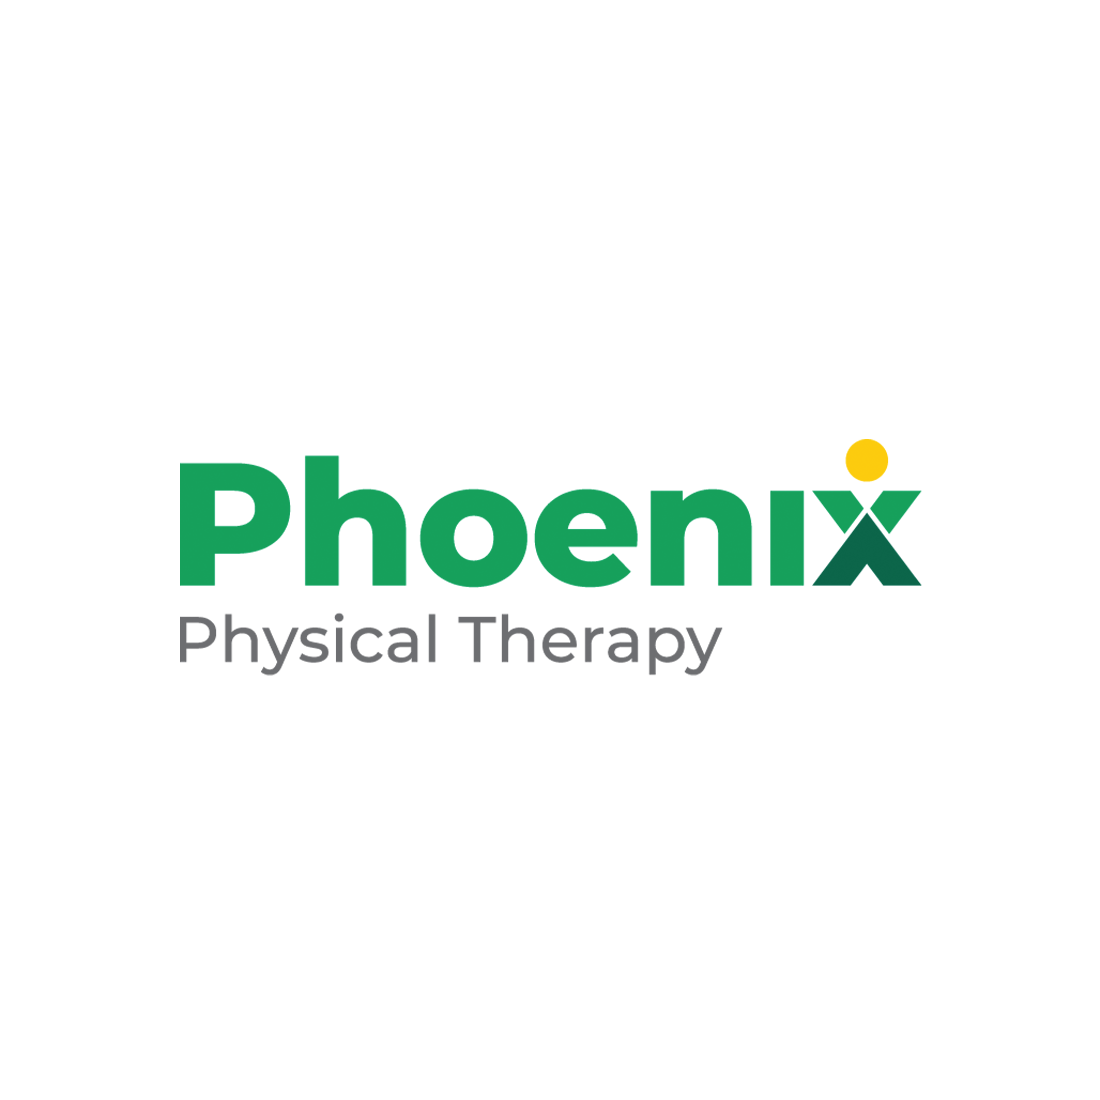 Phoenix Physical Therapy